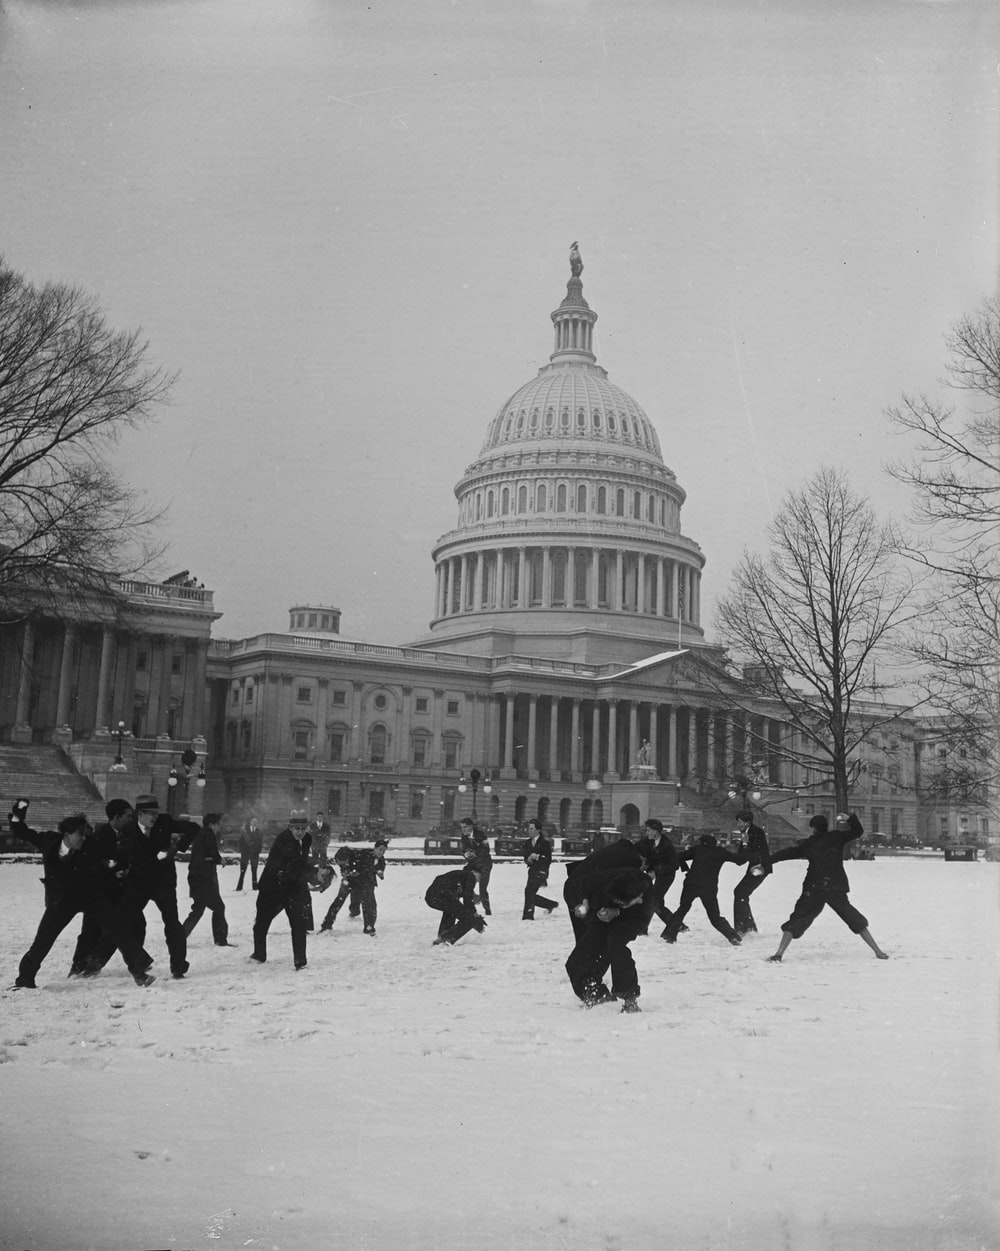 Snowball fight in front of U.S. Capitol, Washington, D.C